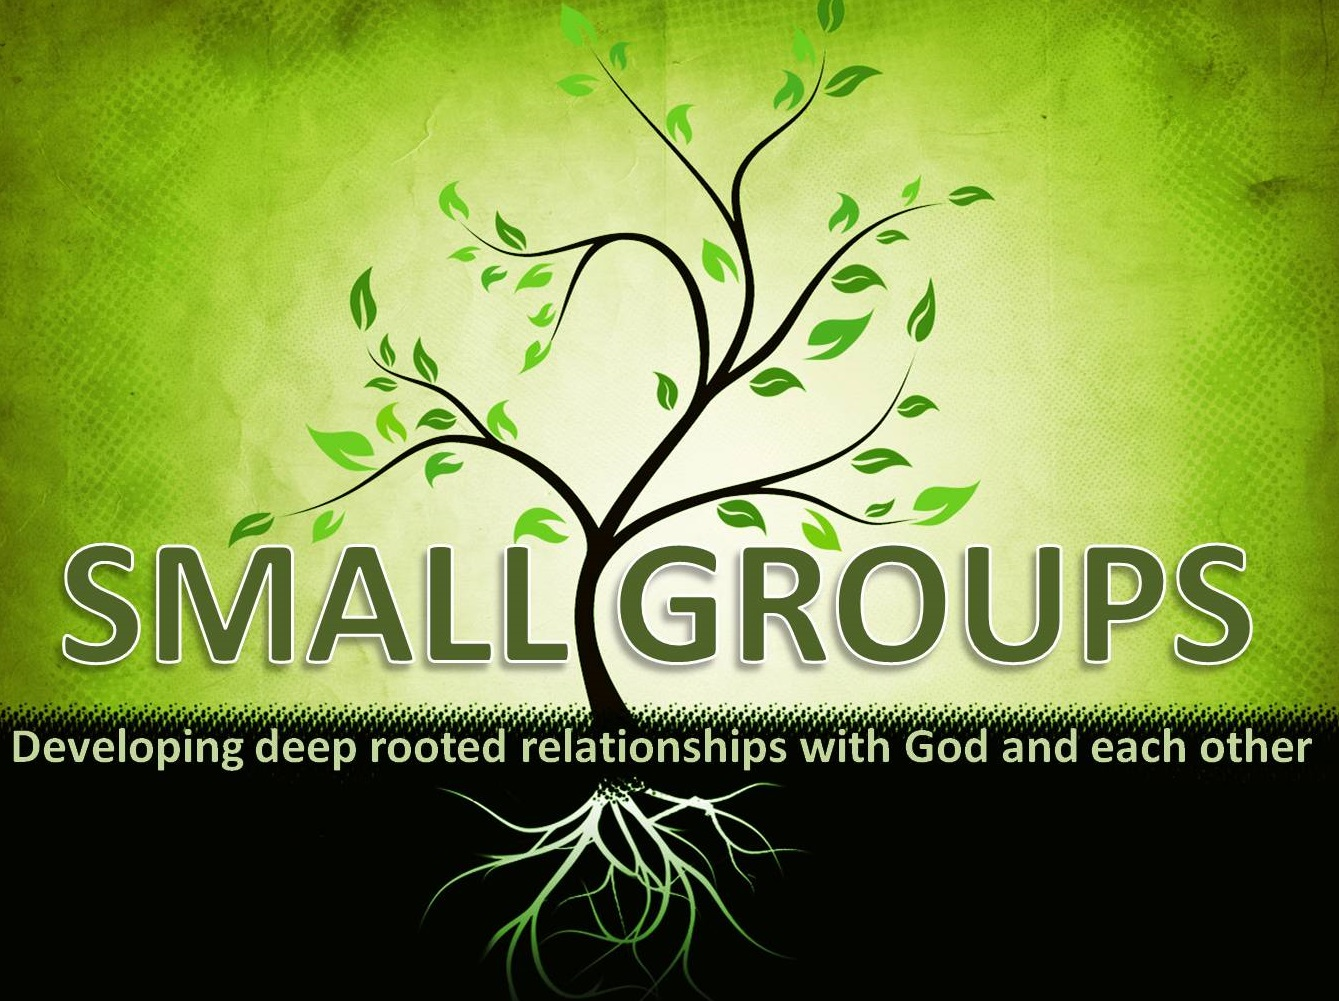 Palm_small_groups_2